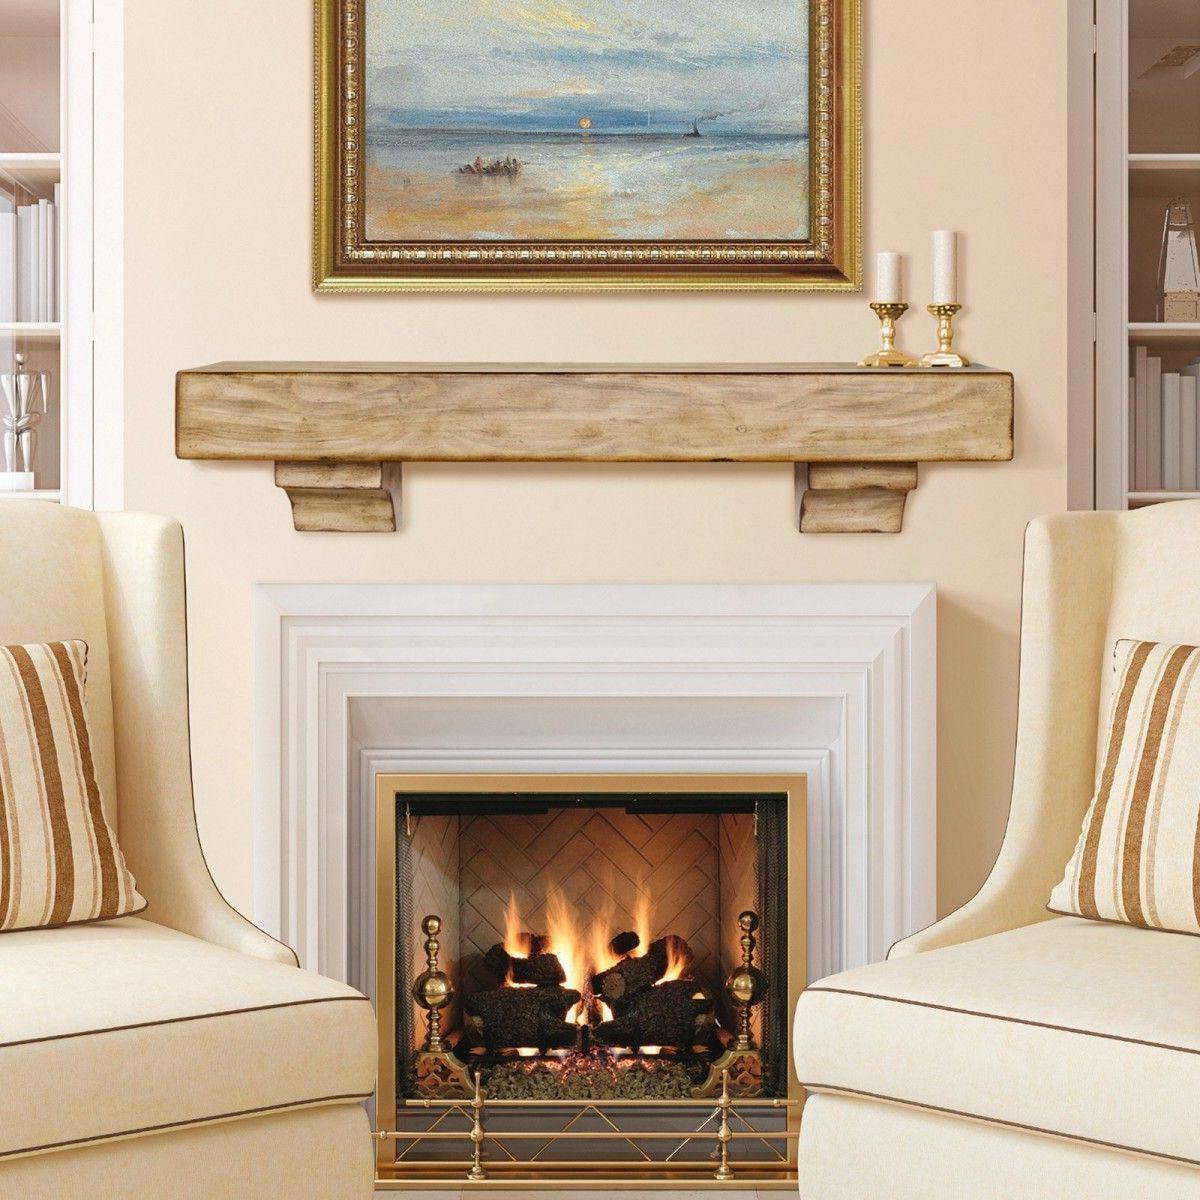 30 Best Fireplace Mantel Ideas And Designs To Brighten Up